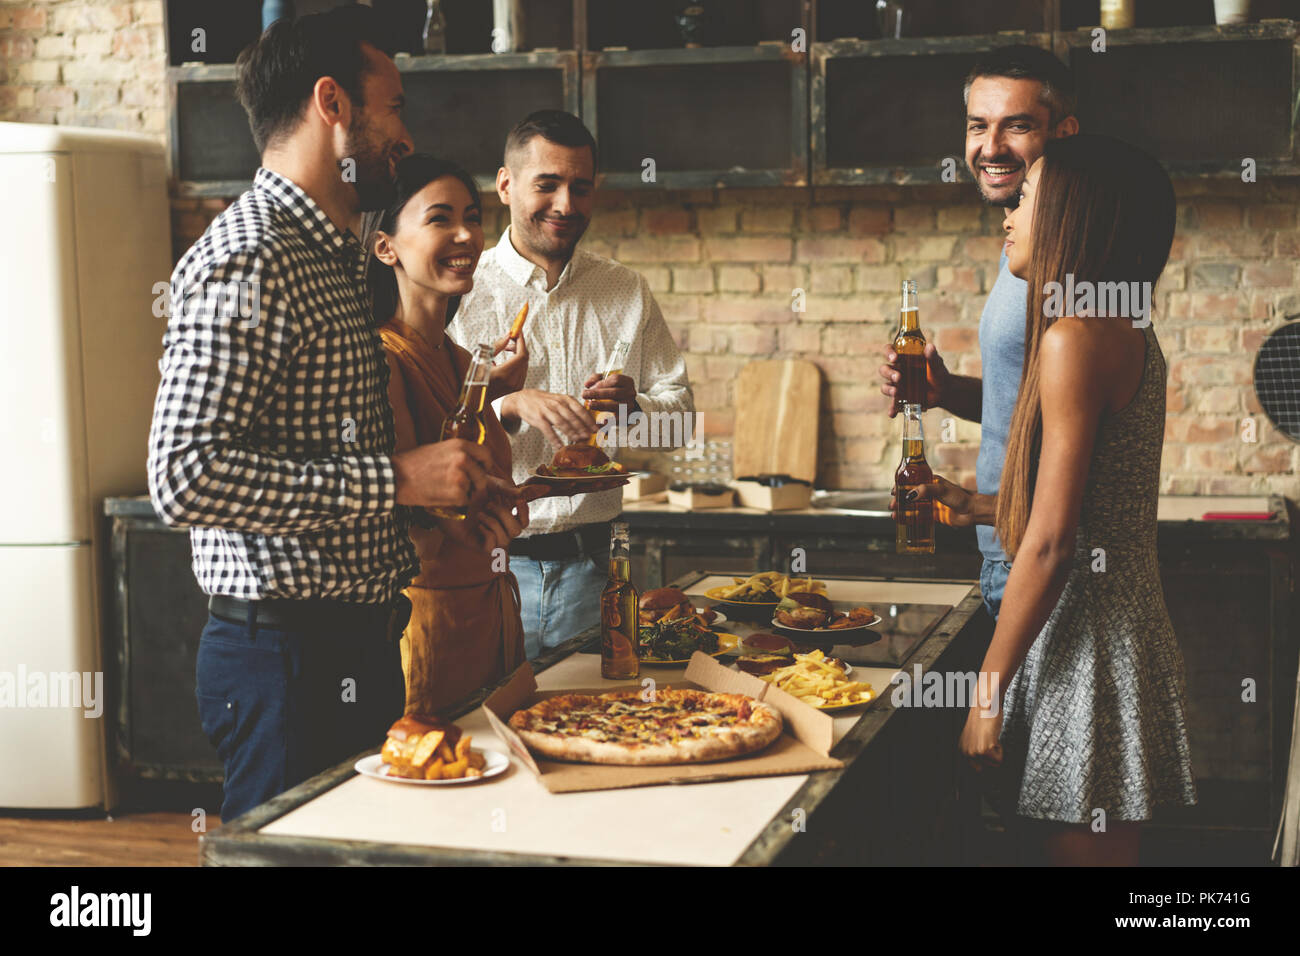 Home party. Toute la longueur de cheerful young people enjoying home party lors de la communication et de manger des collations sur la cuisine. Photo Stock